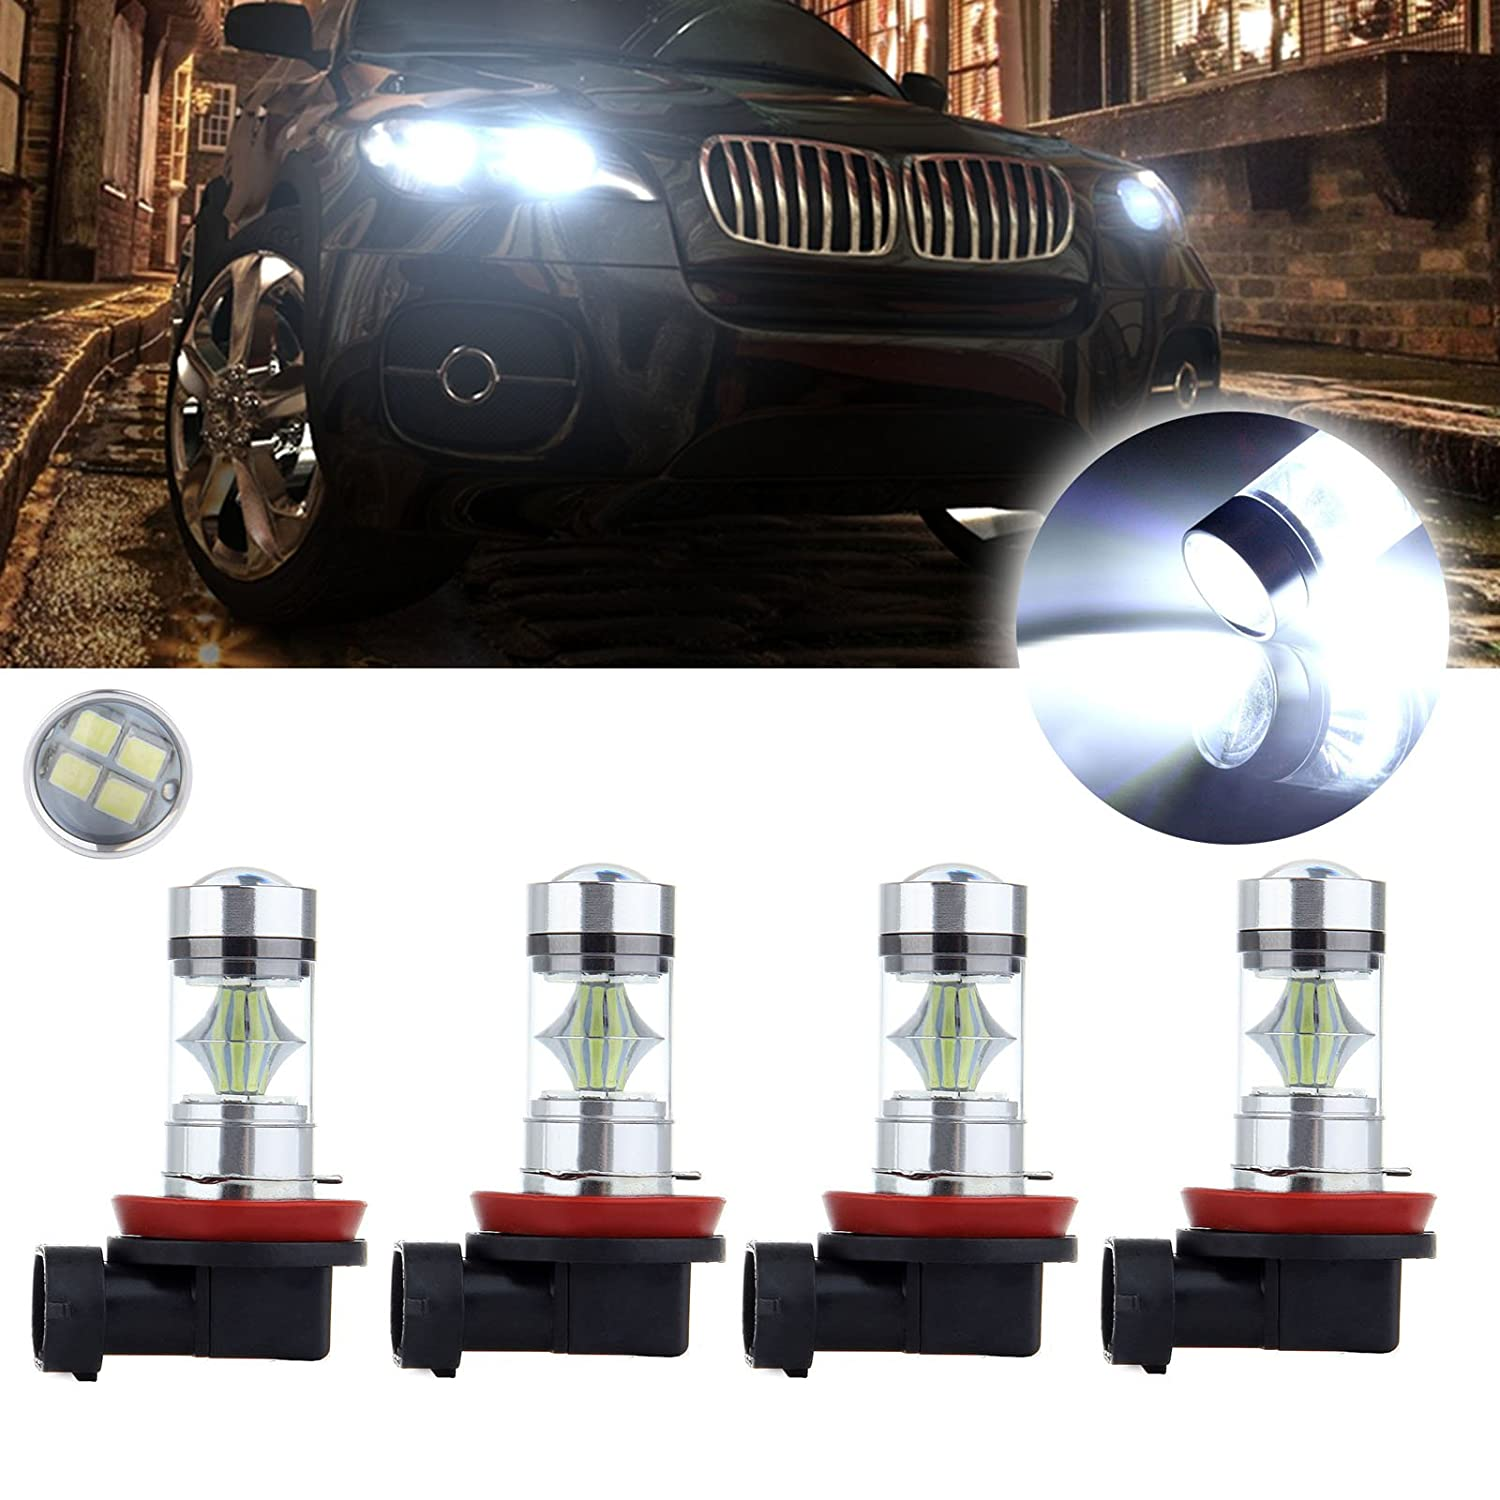 cciyu 4 Pack Xenon White 6000K H11 H8 H9 60W 6000LM Cree LED 12 SMD Light Fog DRL Daytime Lamps US Fast